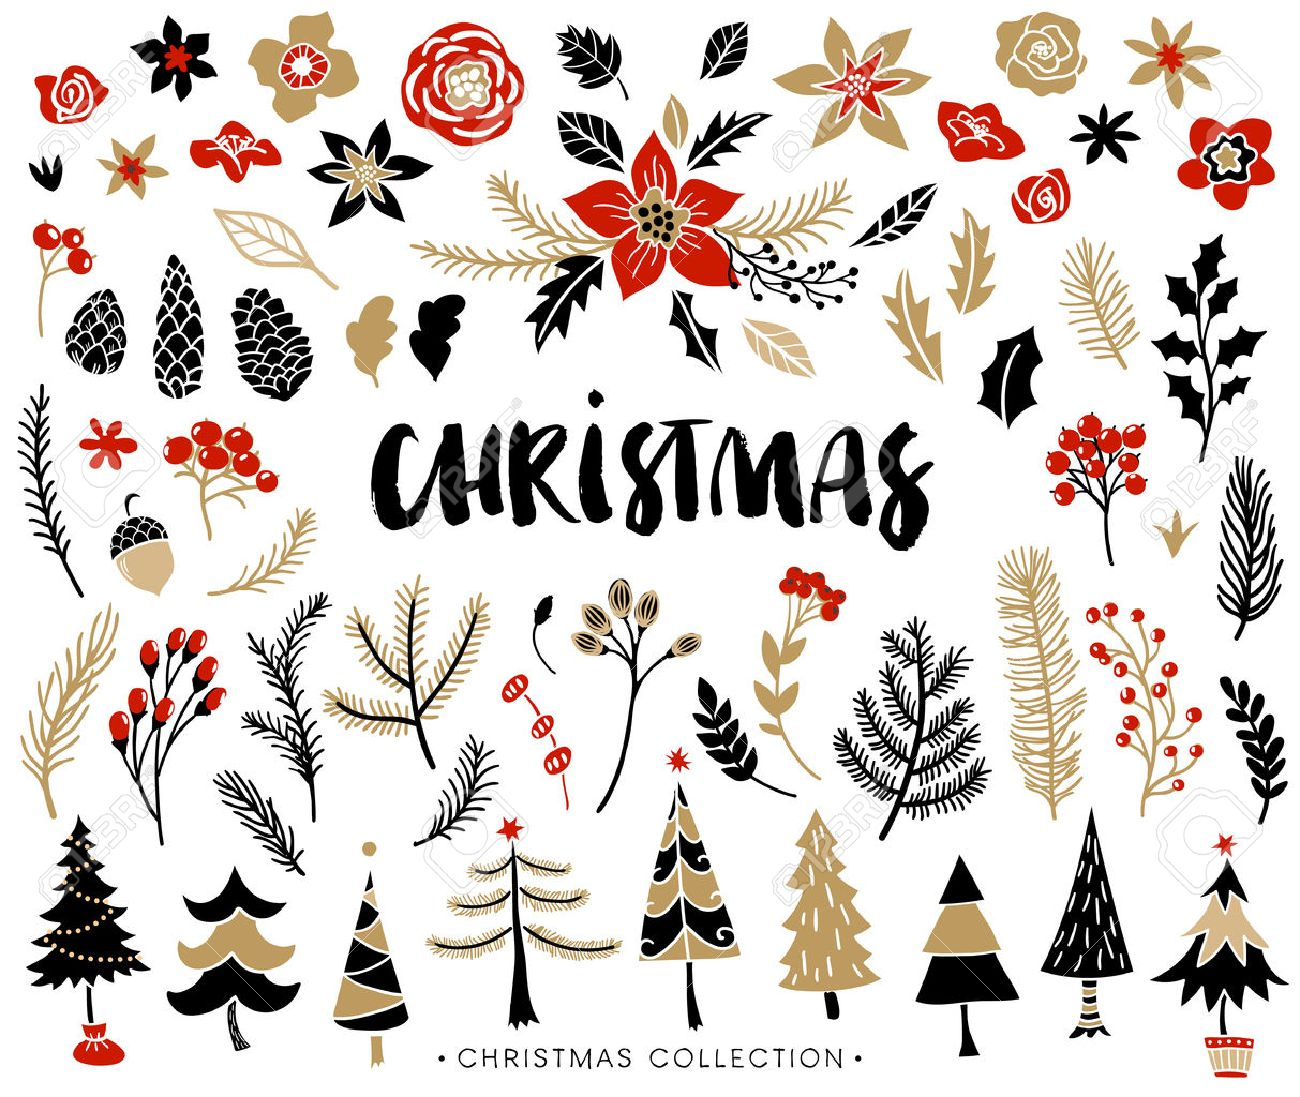 Christmas set of plants with flowers, spruce branches, leaves and berries. Christmas trees. Handwritten modern brush lettering. Hand drawn design elements. - 47968955